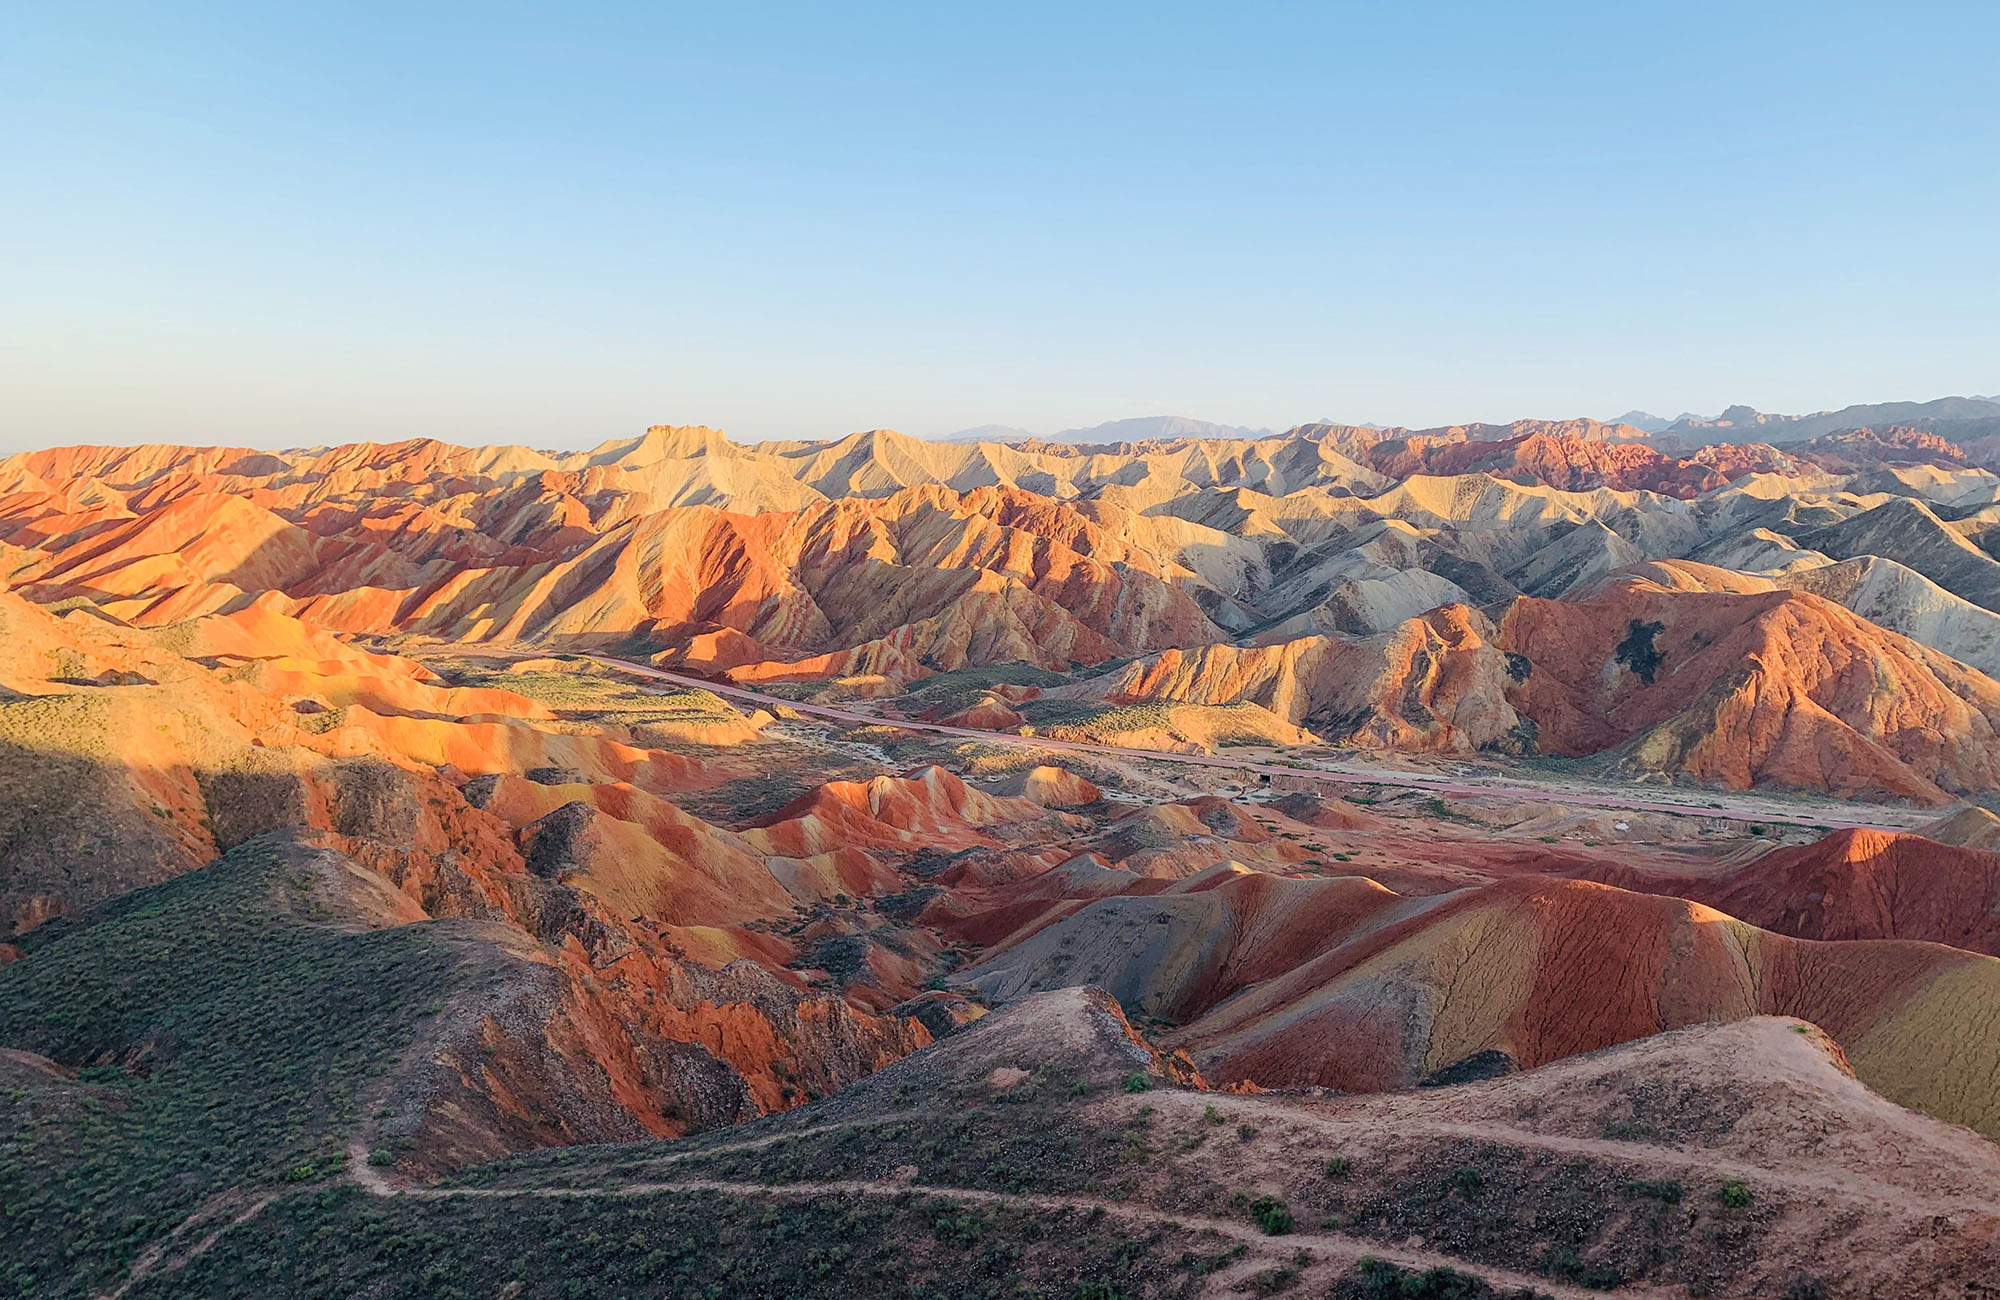 Rainbow Mountain in Gansu, China | Reizen 2020 | Beste bestemmingen 2020 | KILROY